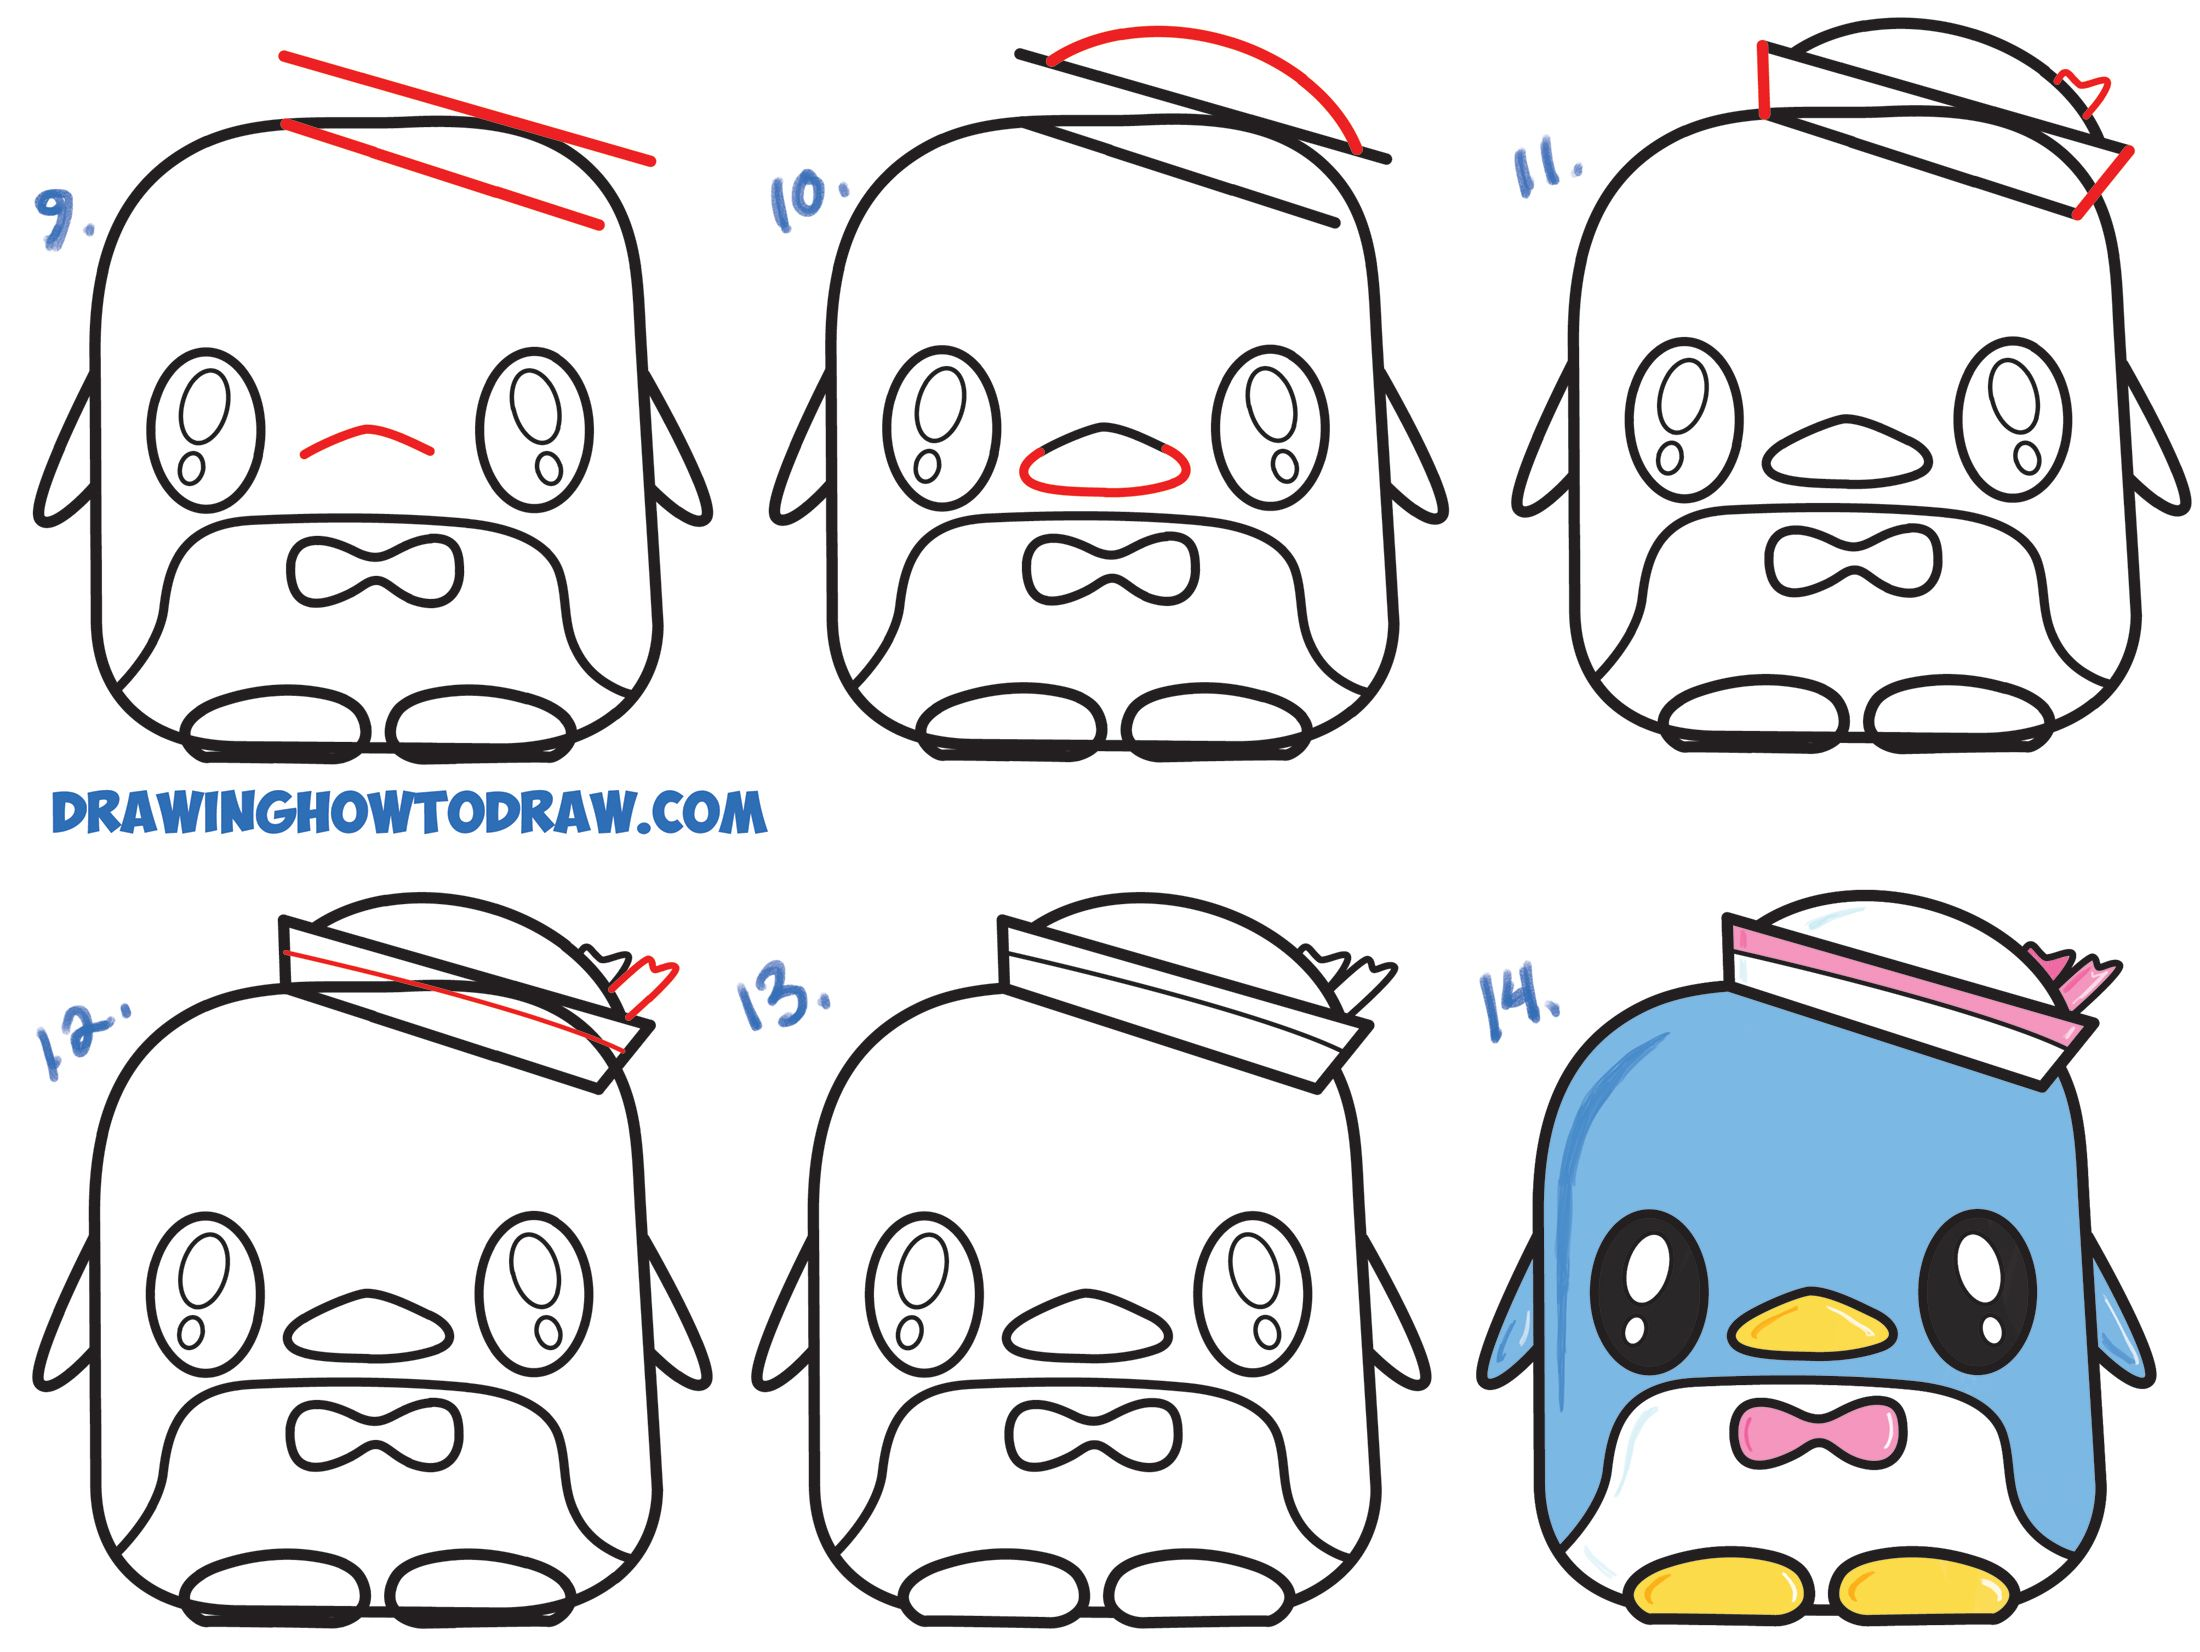 Learn How To Draw Tuxedo Sam Cute Kawaii Chibi Penguin From Hello Kitty Simple Steps Drawing L Kawaii Penguin Hello Kitty Characters Drawing Lessons For Kids